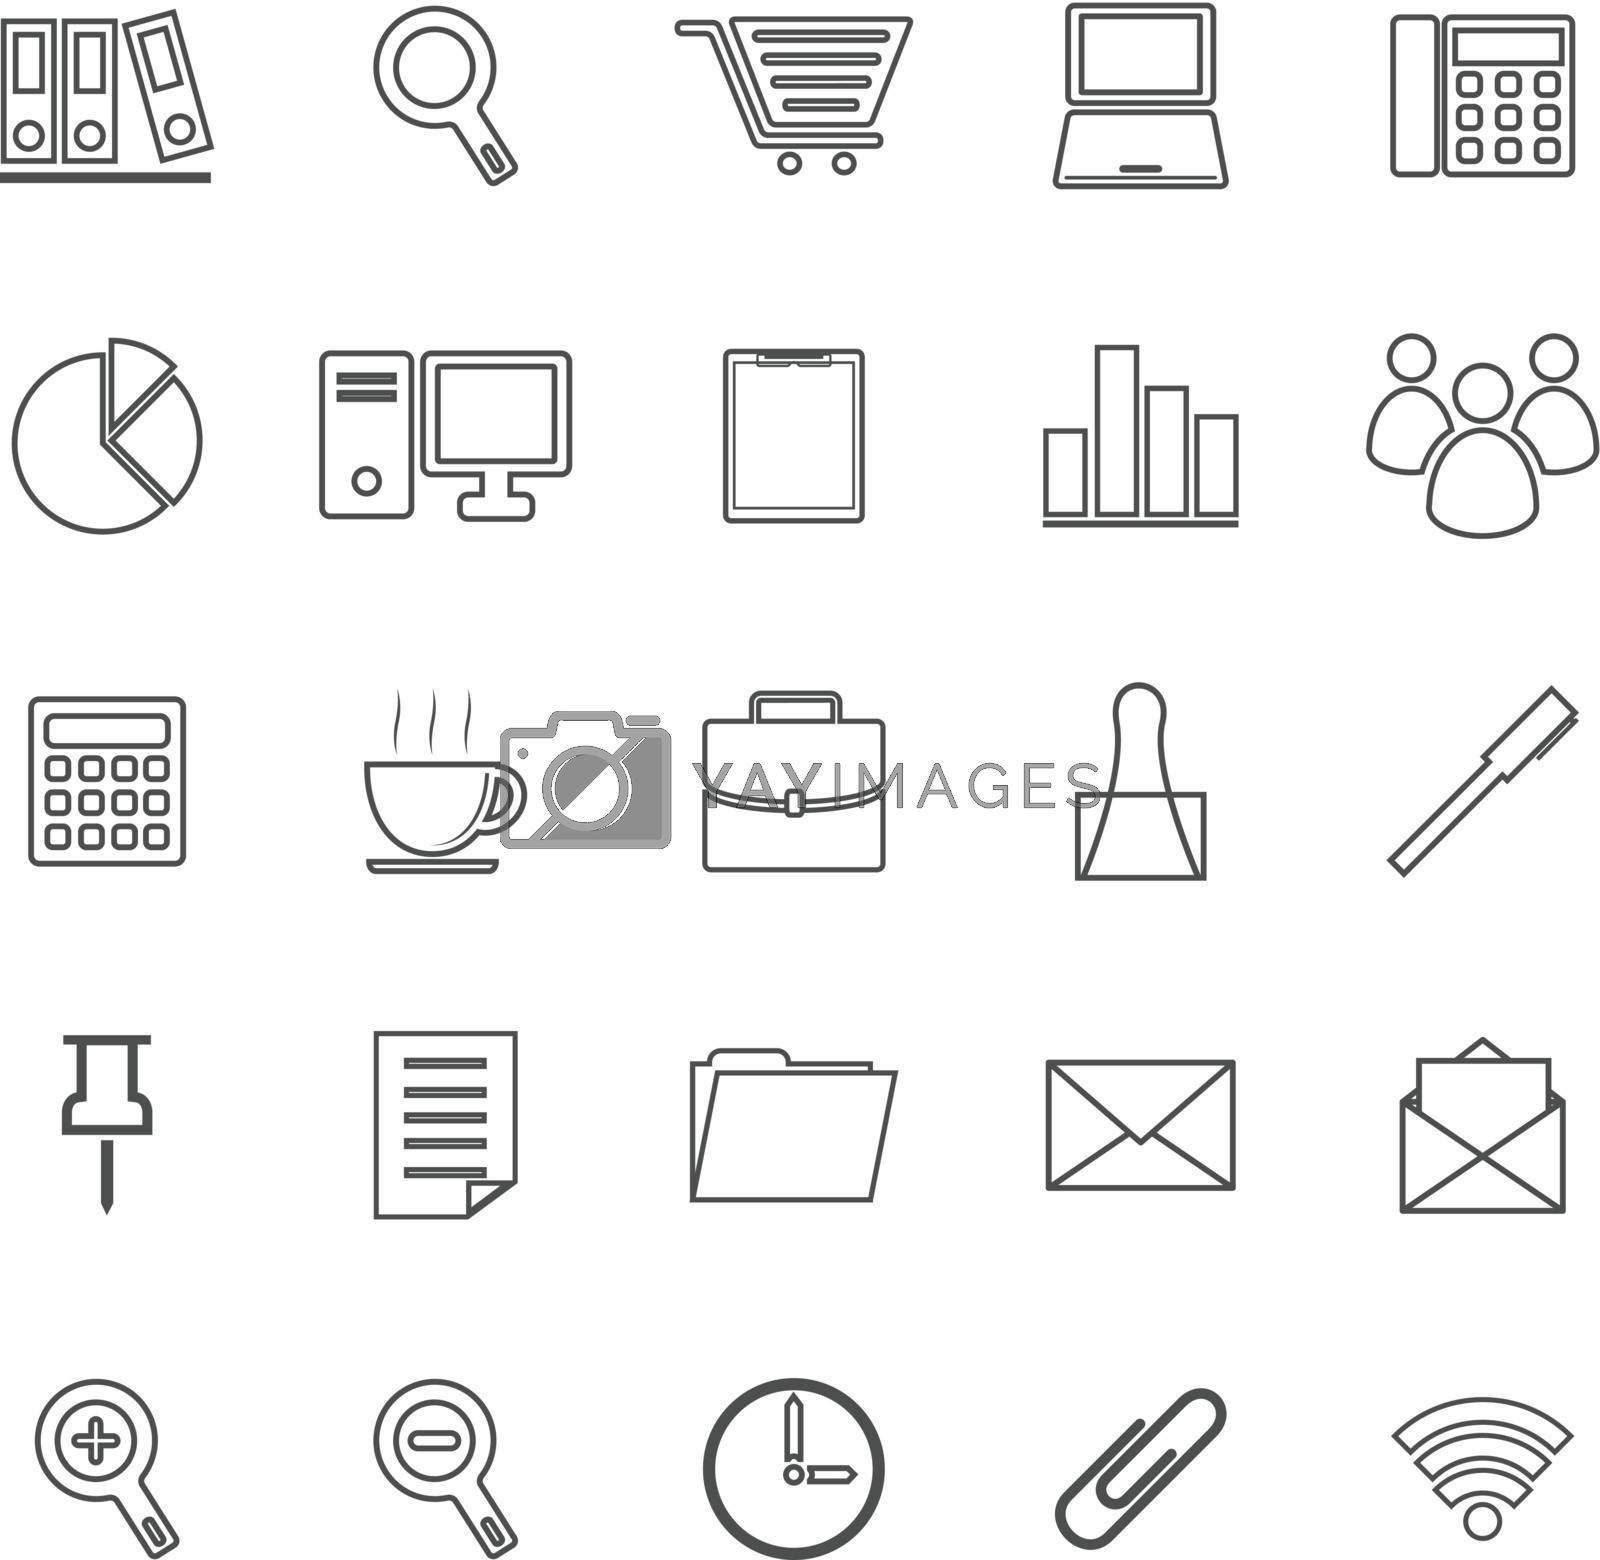 Office line icon on white background, stock vetor